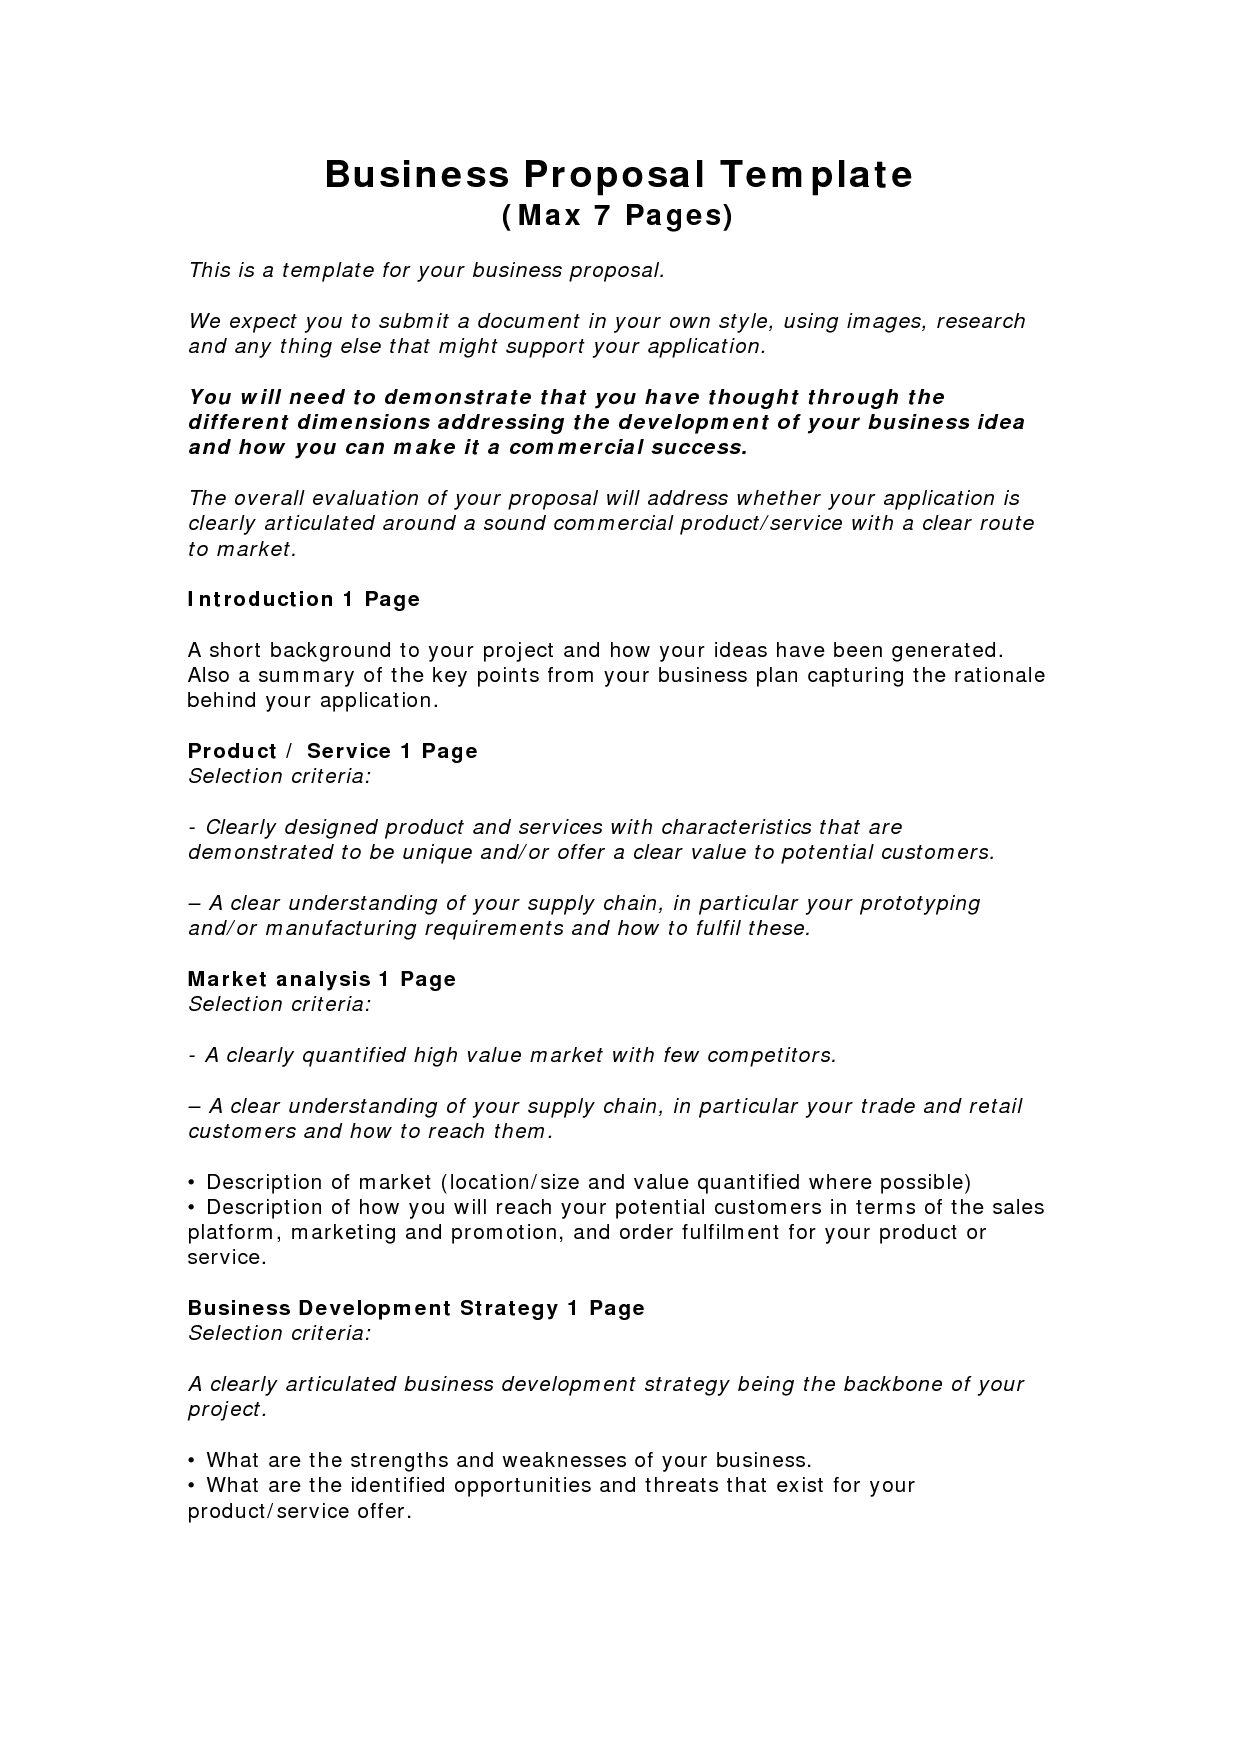 Business Proposal Templates Examples Business Proposal Template - Simple business plan templates